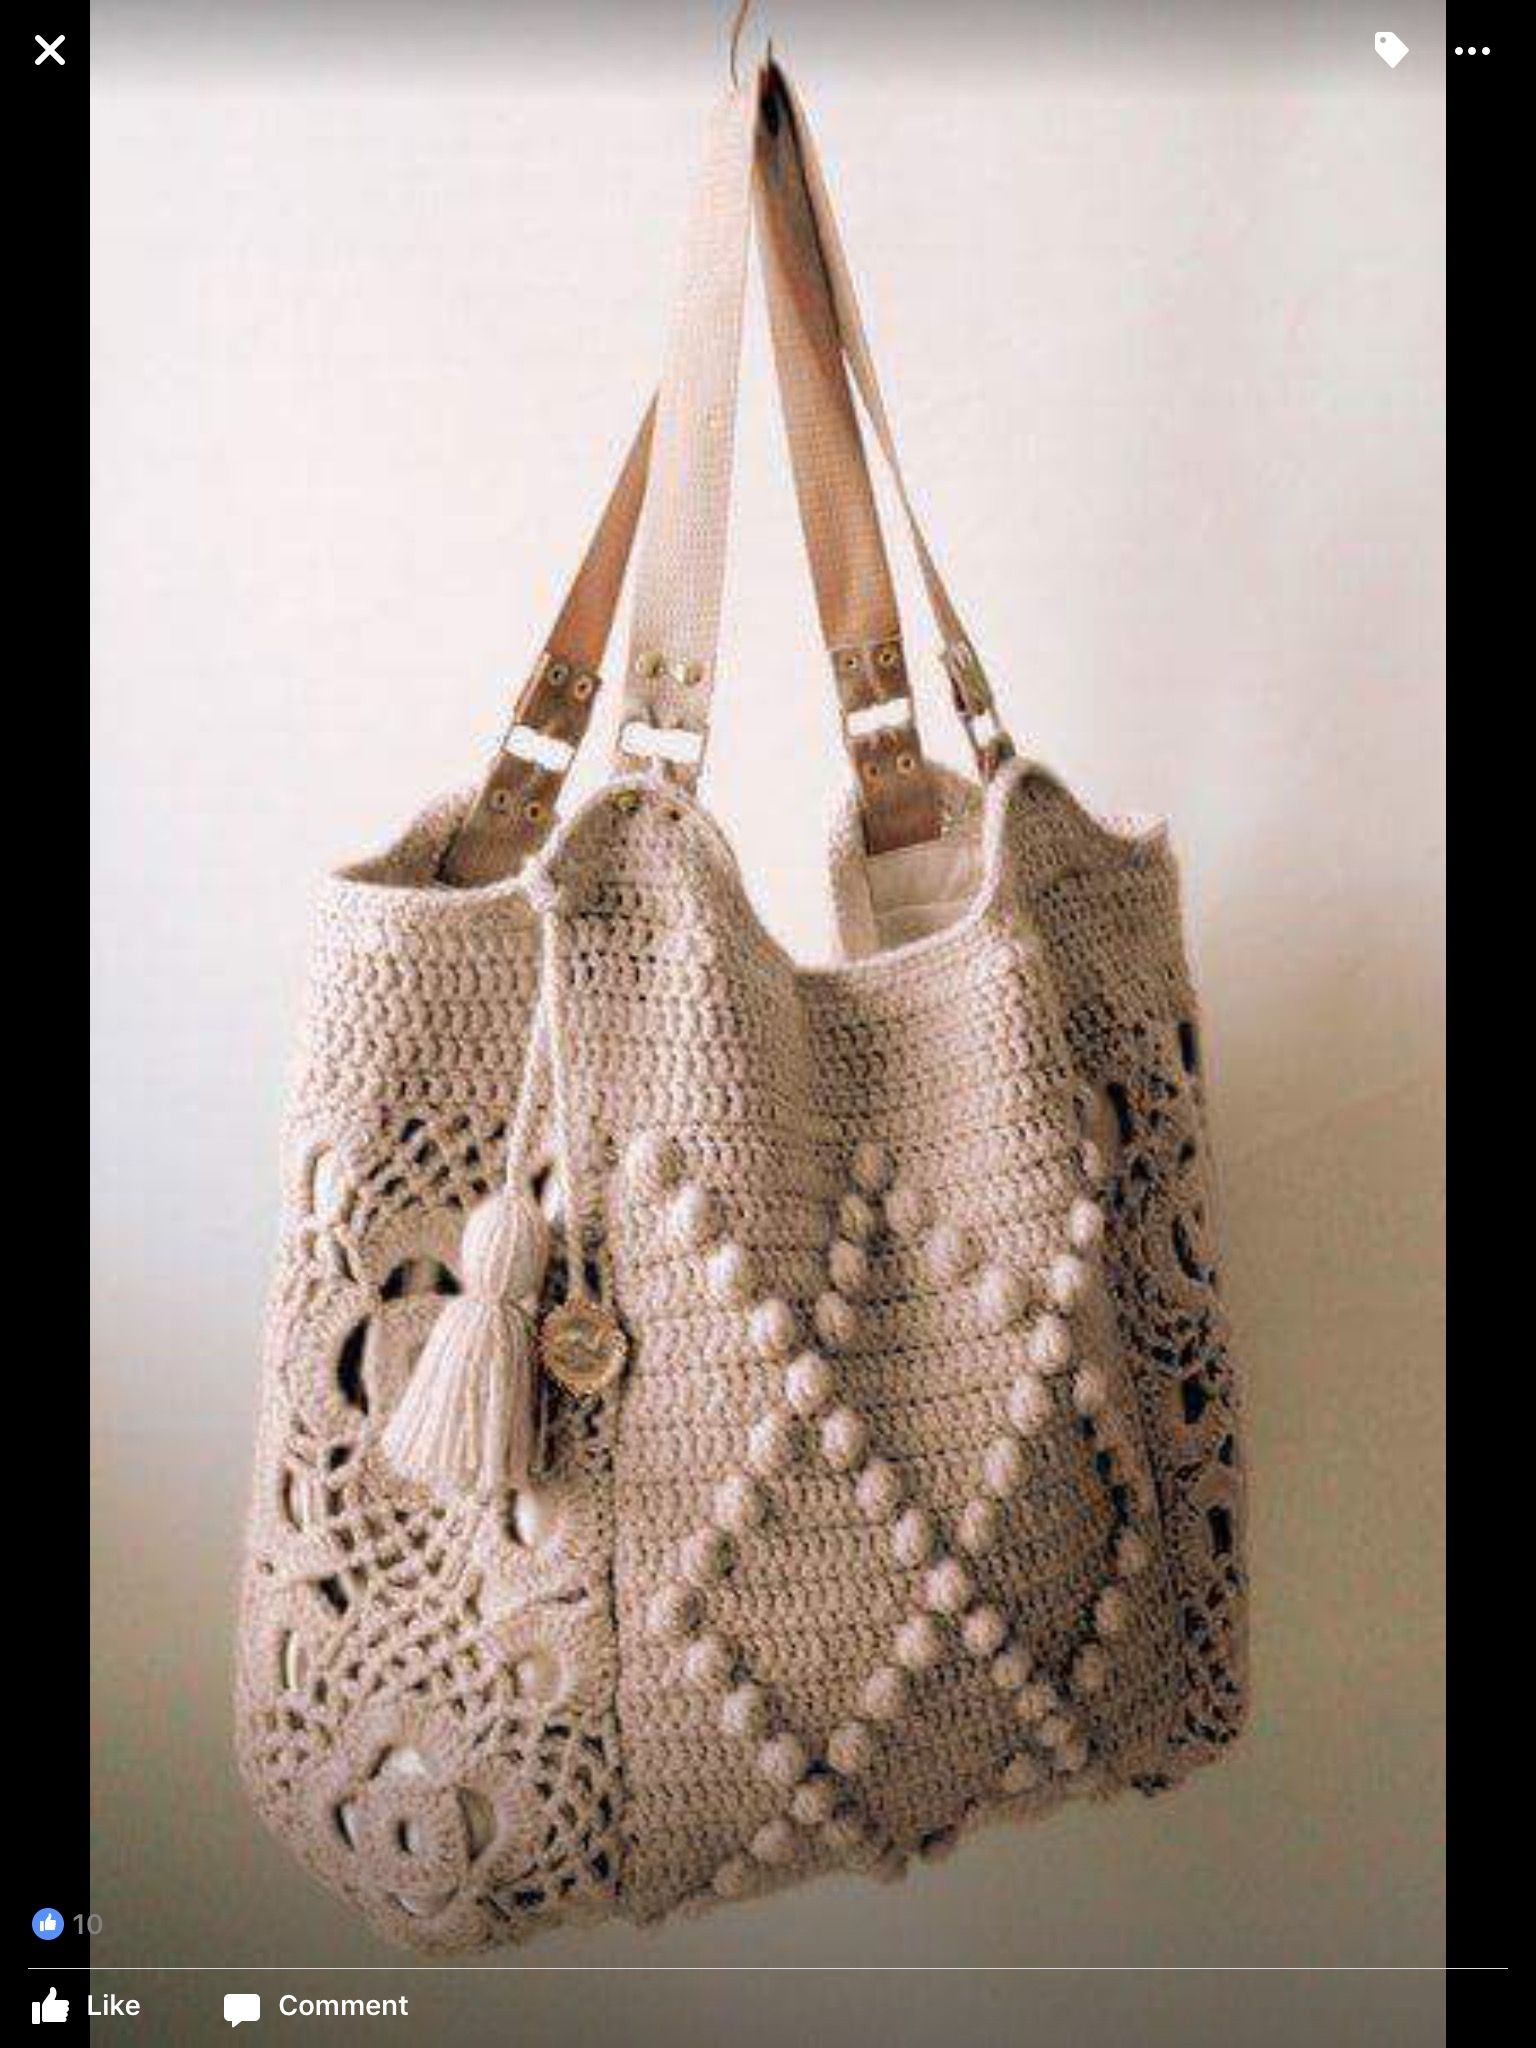 Pin by Jodie Cooper on Crochet... My Addiction! | Pinterest ...